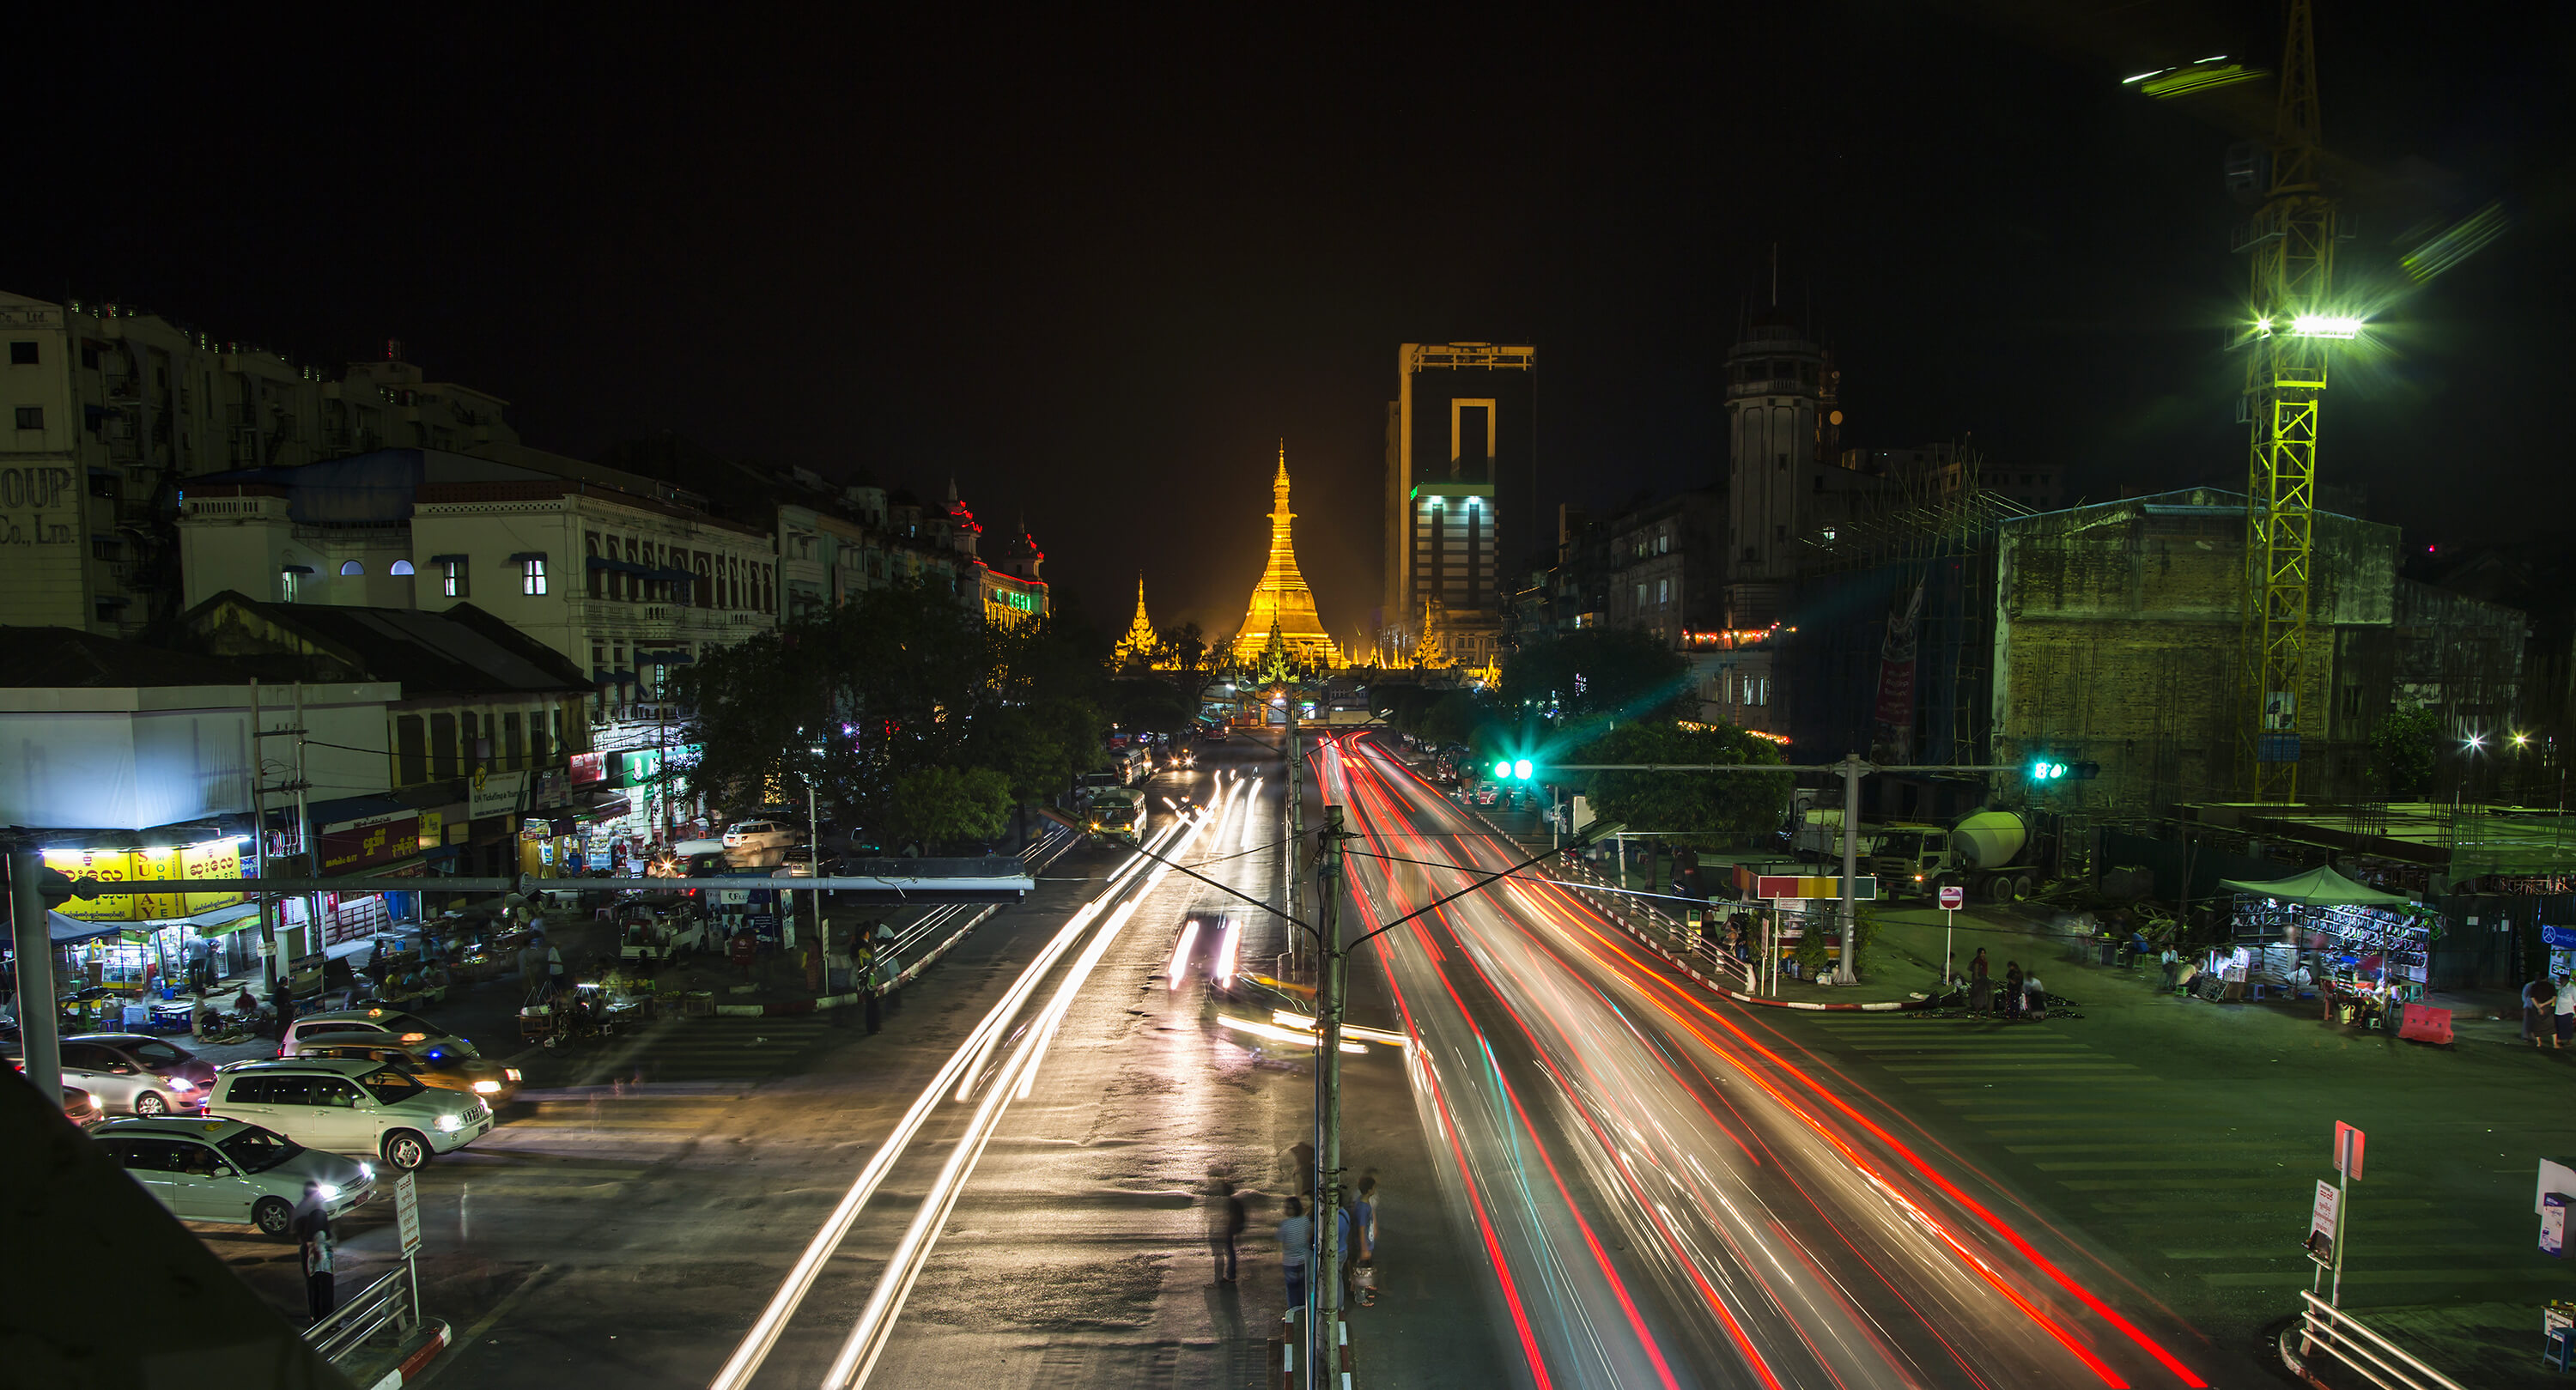 New Members announced for the Myanmar Investment Commission